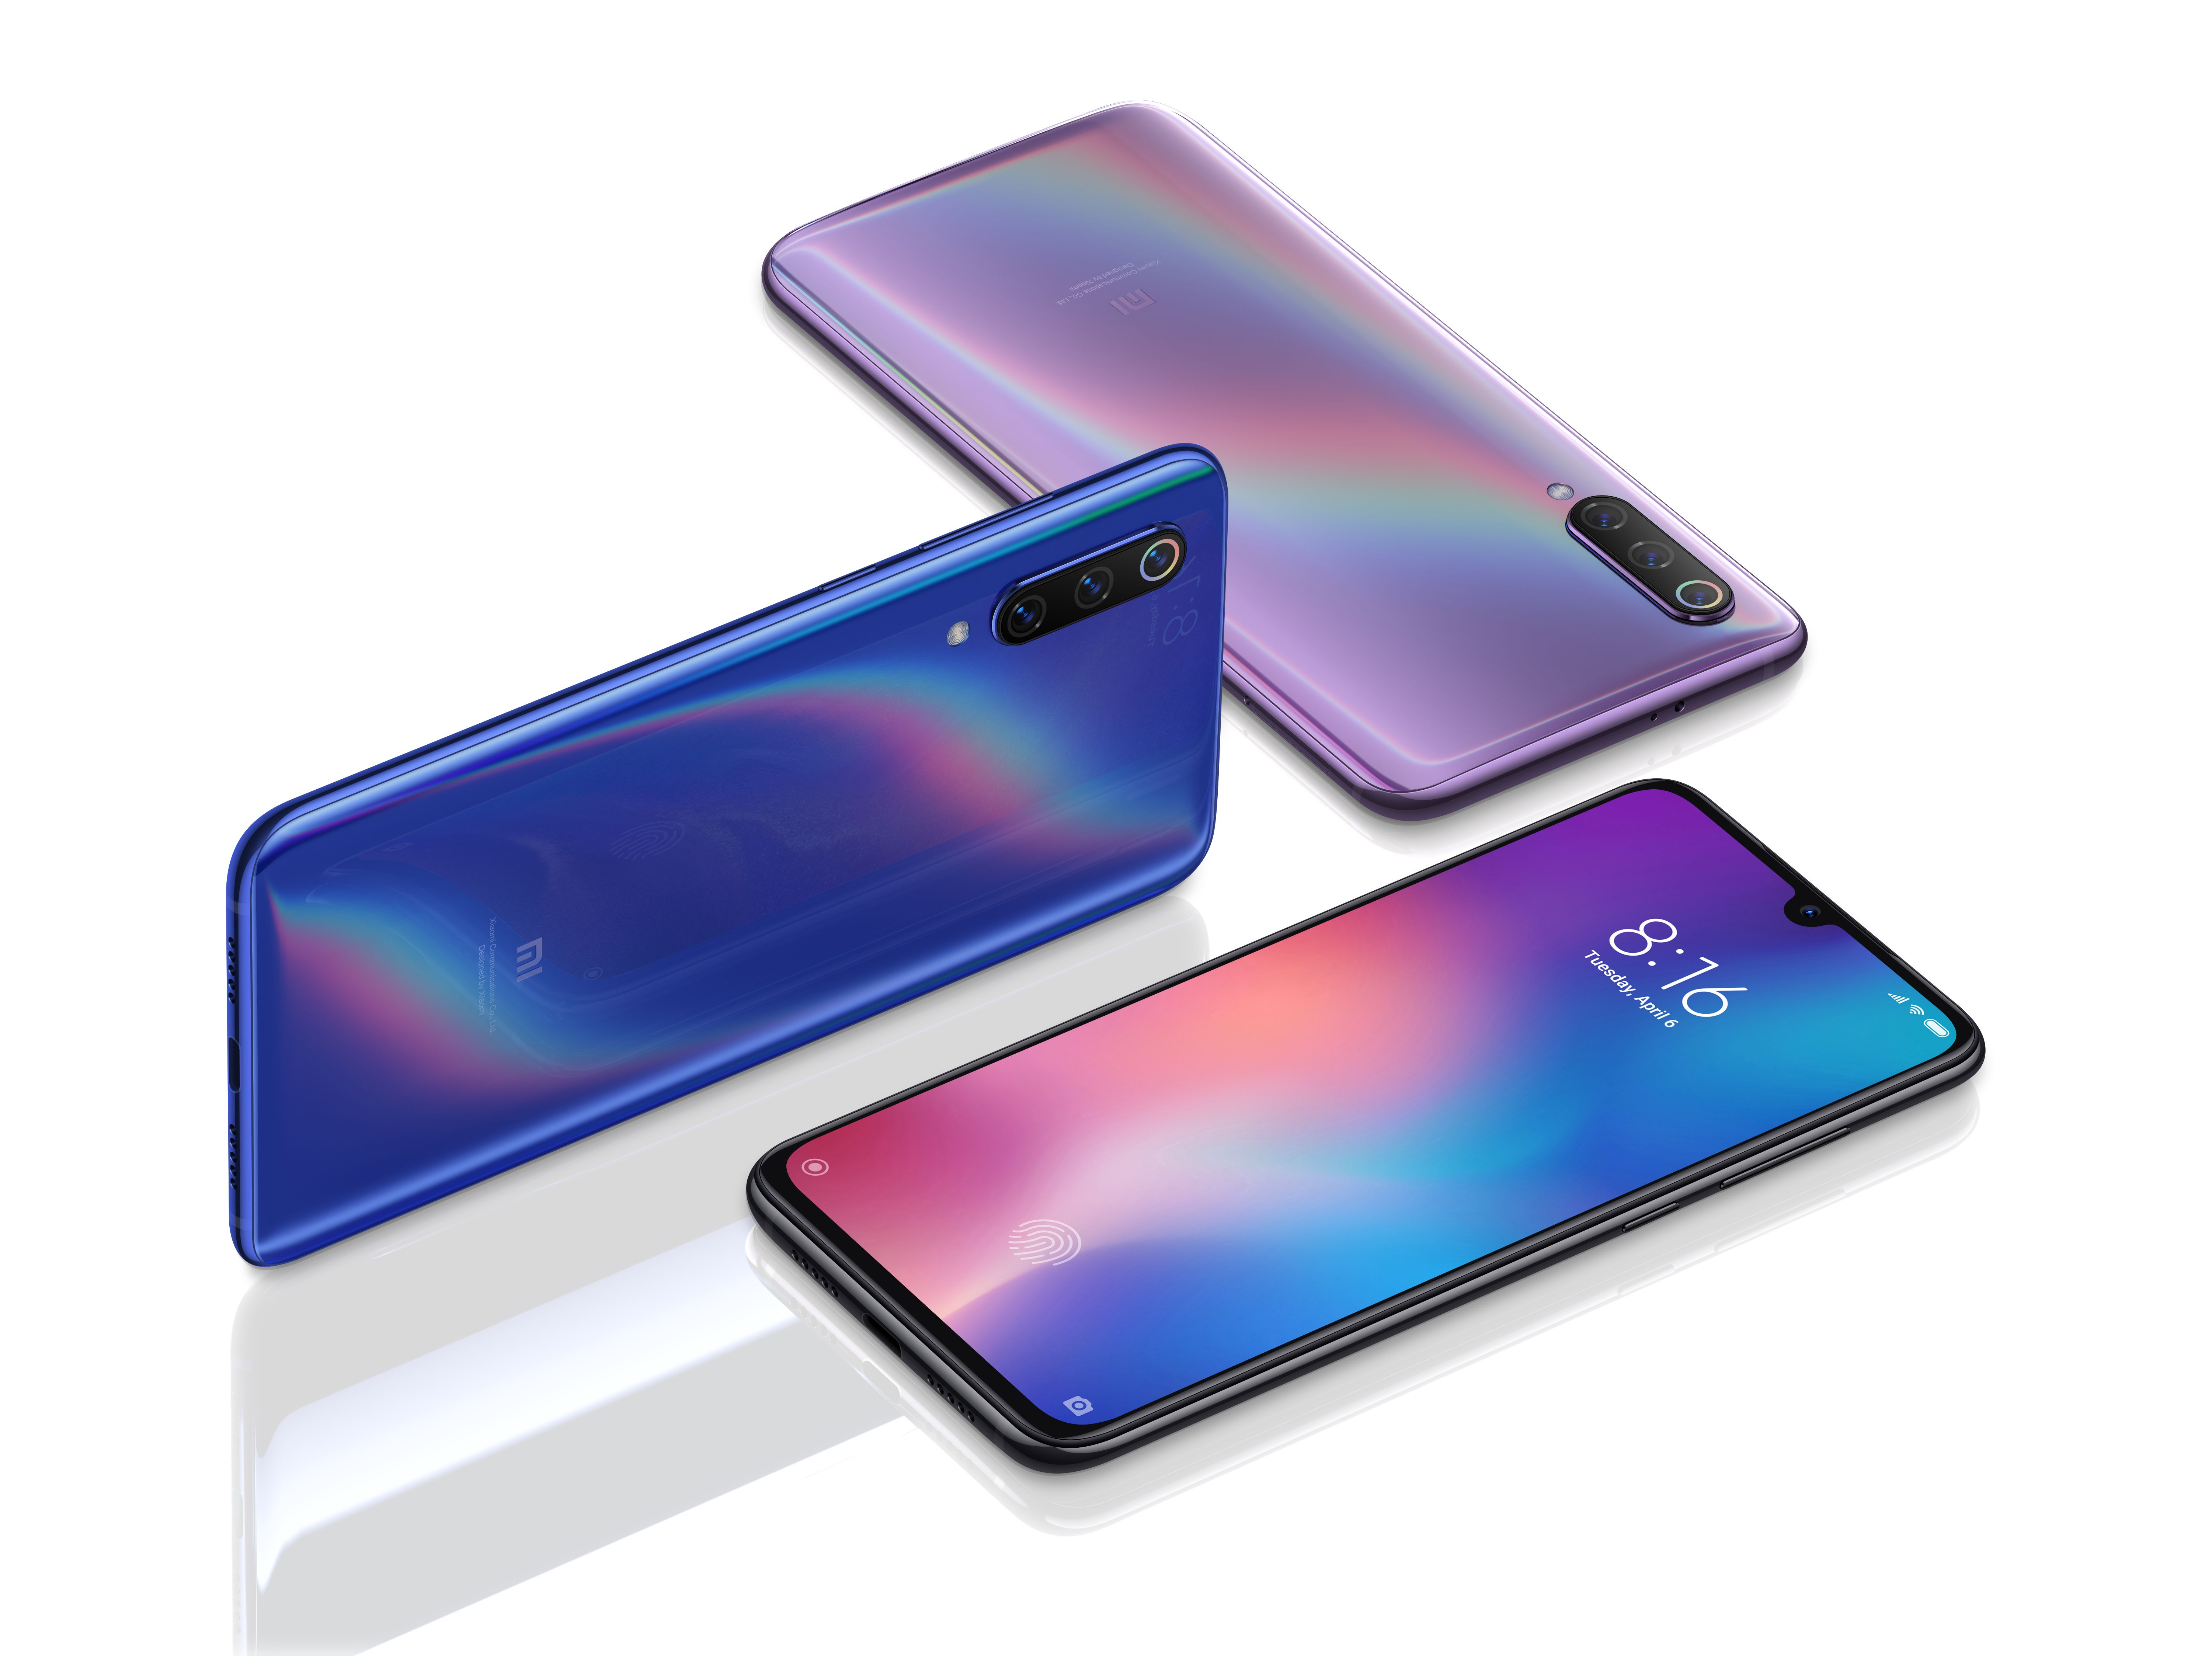 Mi 9, Xiaomi's first triple-camera phone, starts from RM1